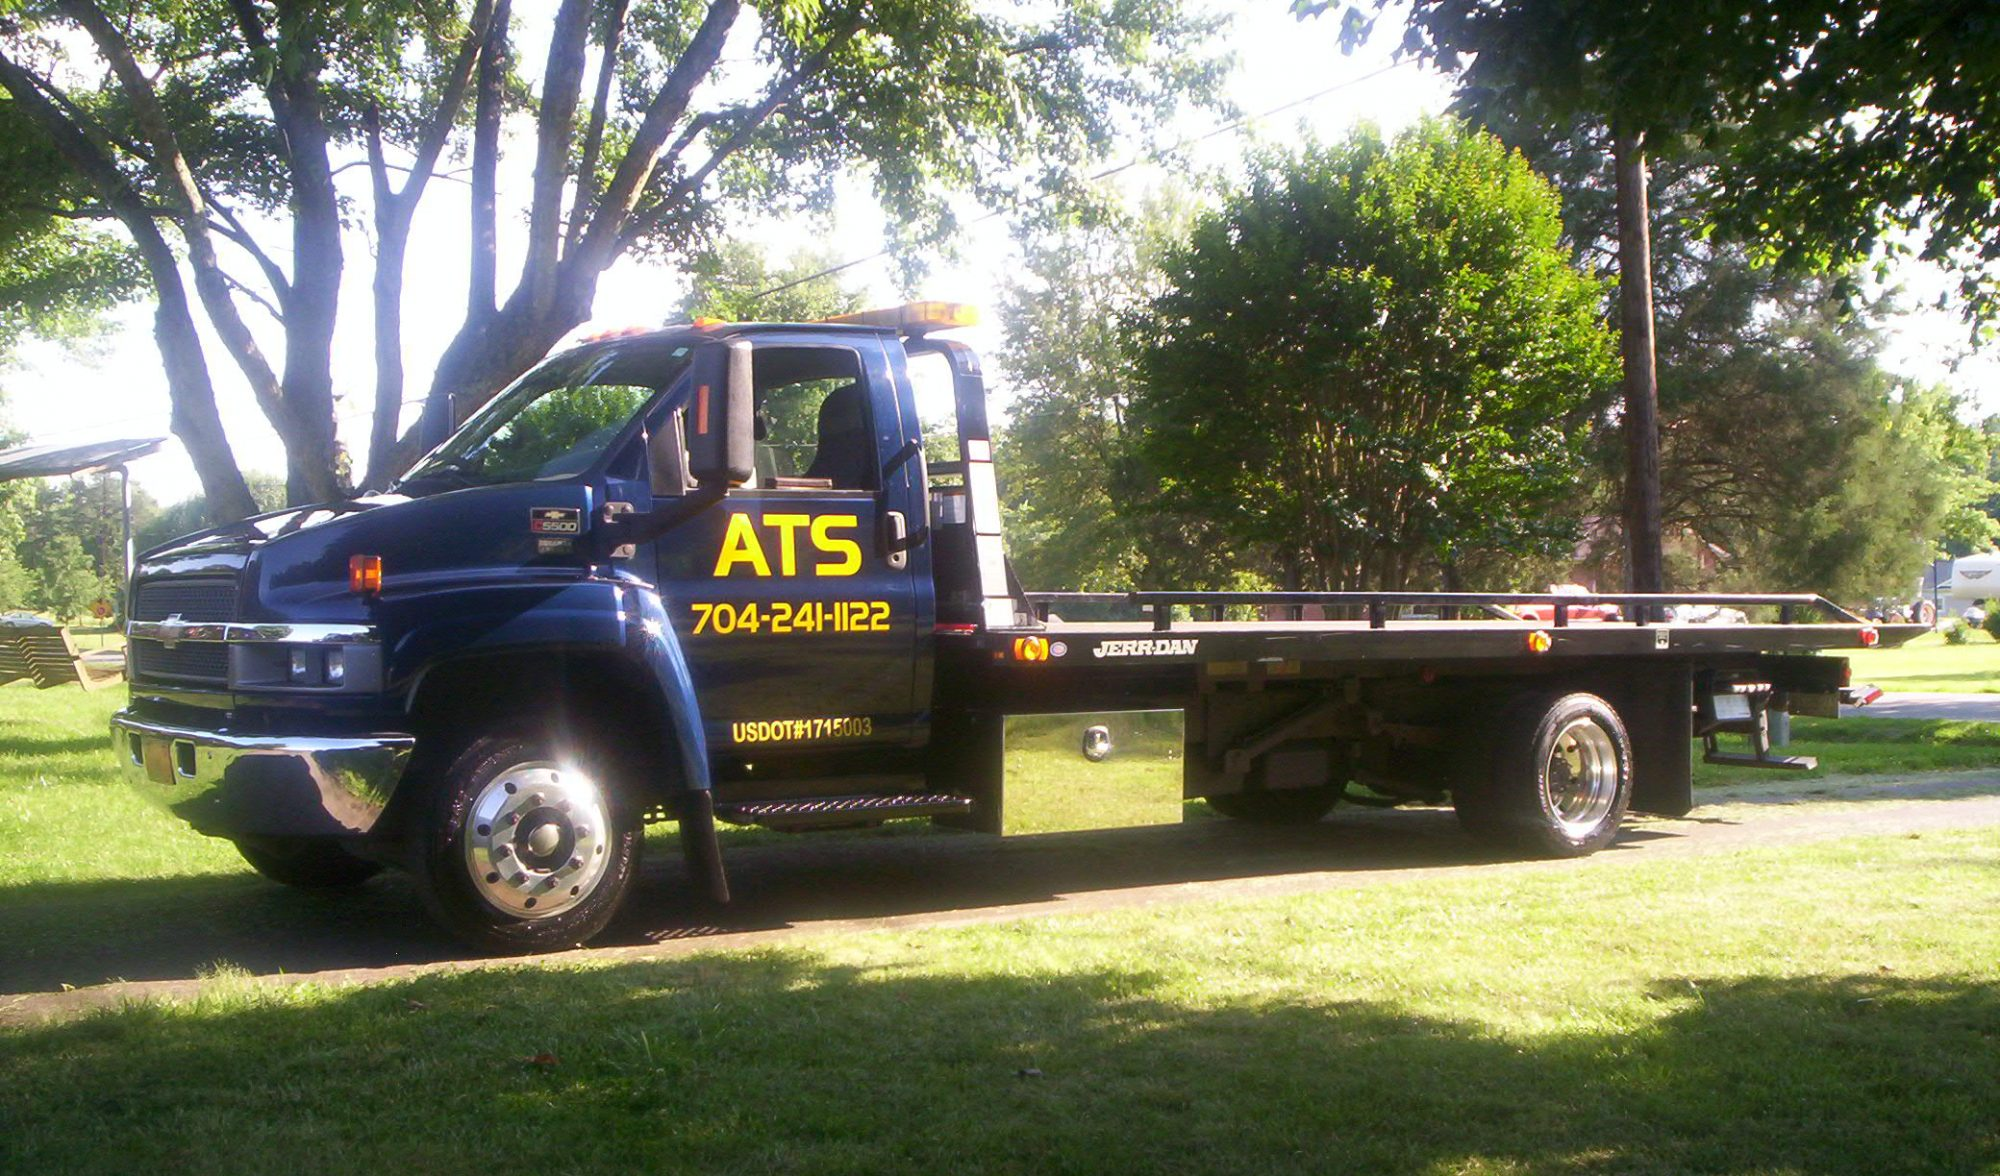 A.T.S. Automotive Transport Service